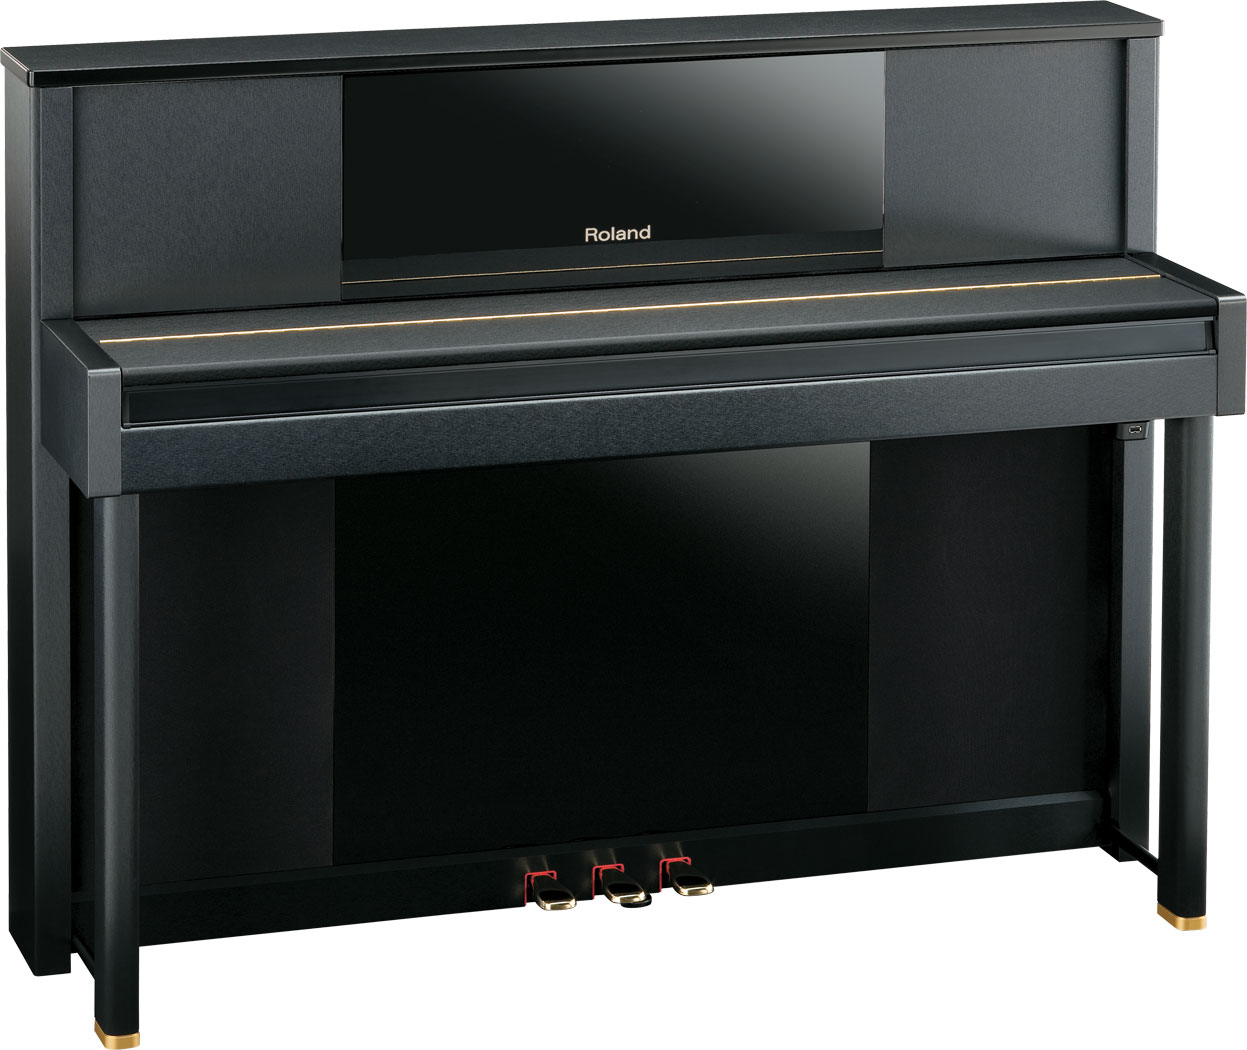 roland lx 10 roland piano digital. Black Bedroom Furniture Sets. Home Design Ideas